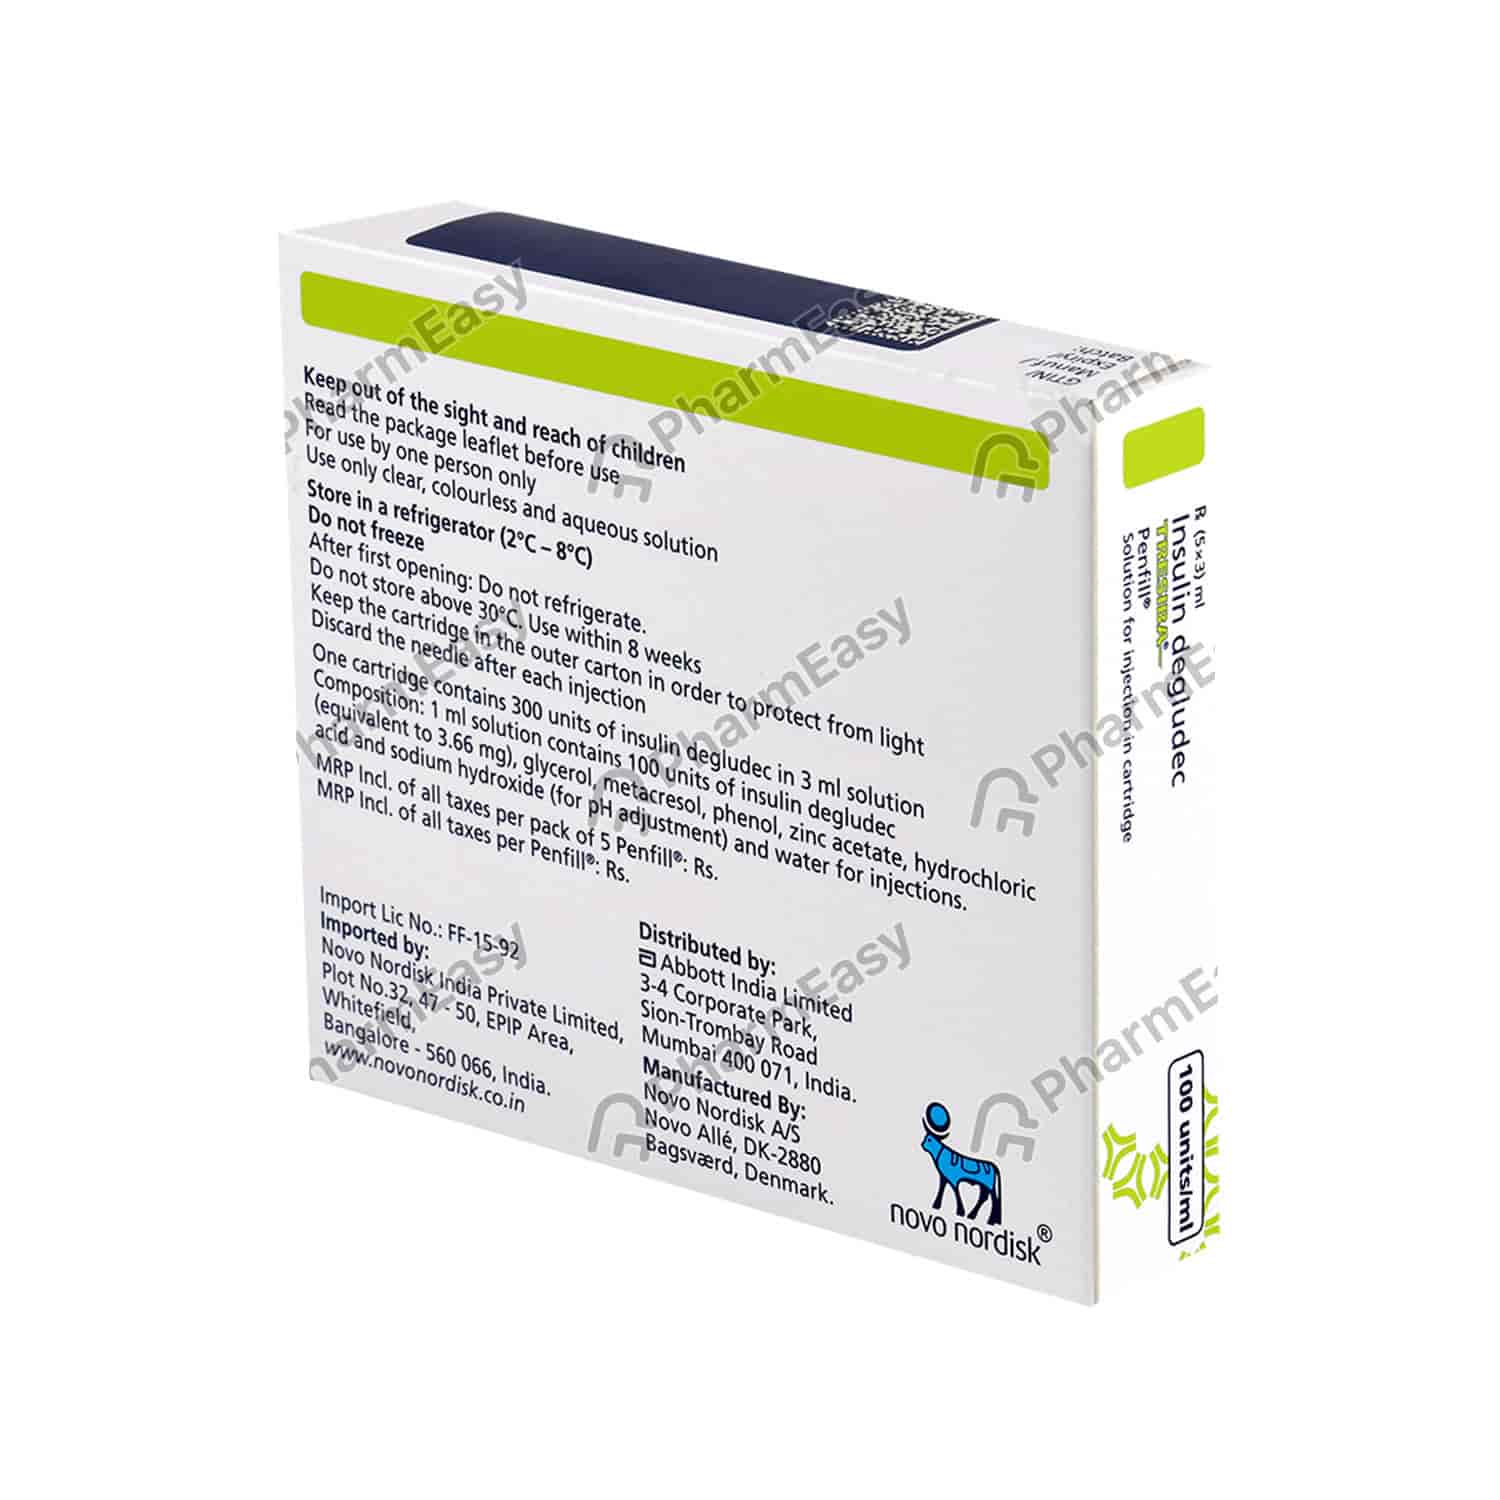 Tresiba 100iu Penfill 3ml Uses Side Effects Dosage